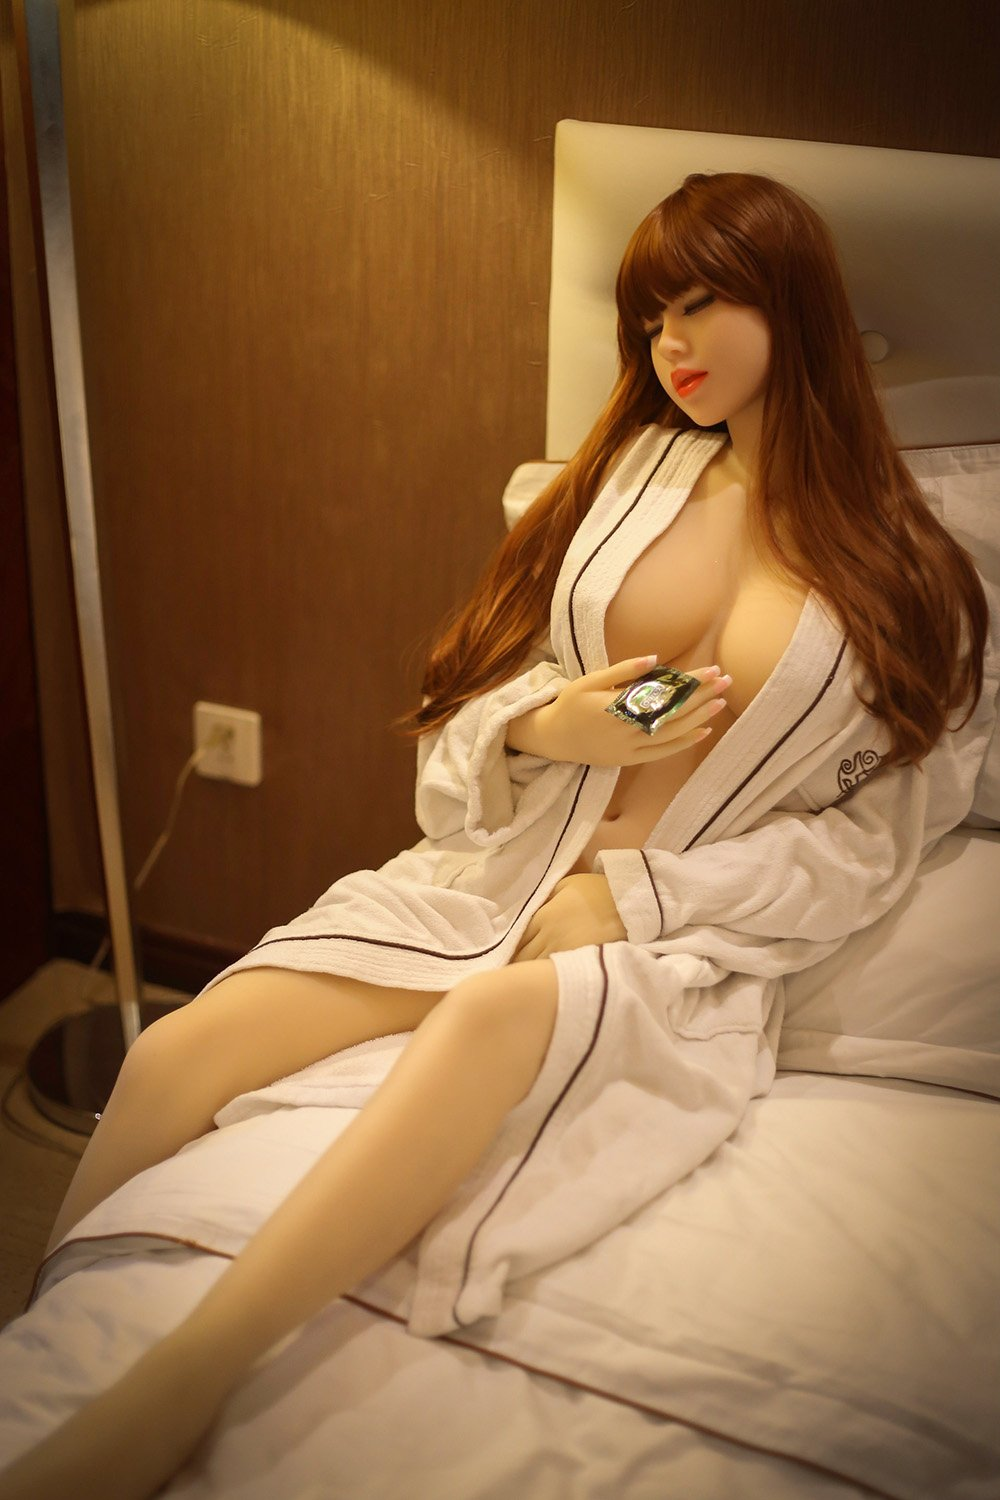 patsy 158cm brown hair medium tits skinny tpe wm asian sex doll(4)